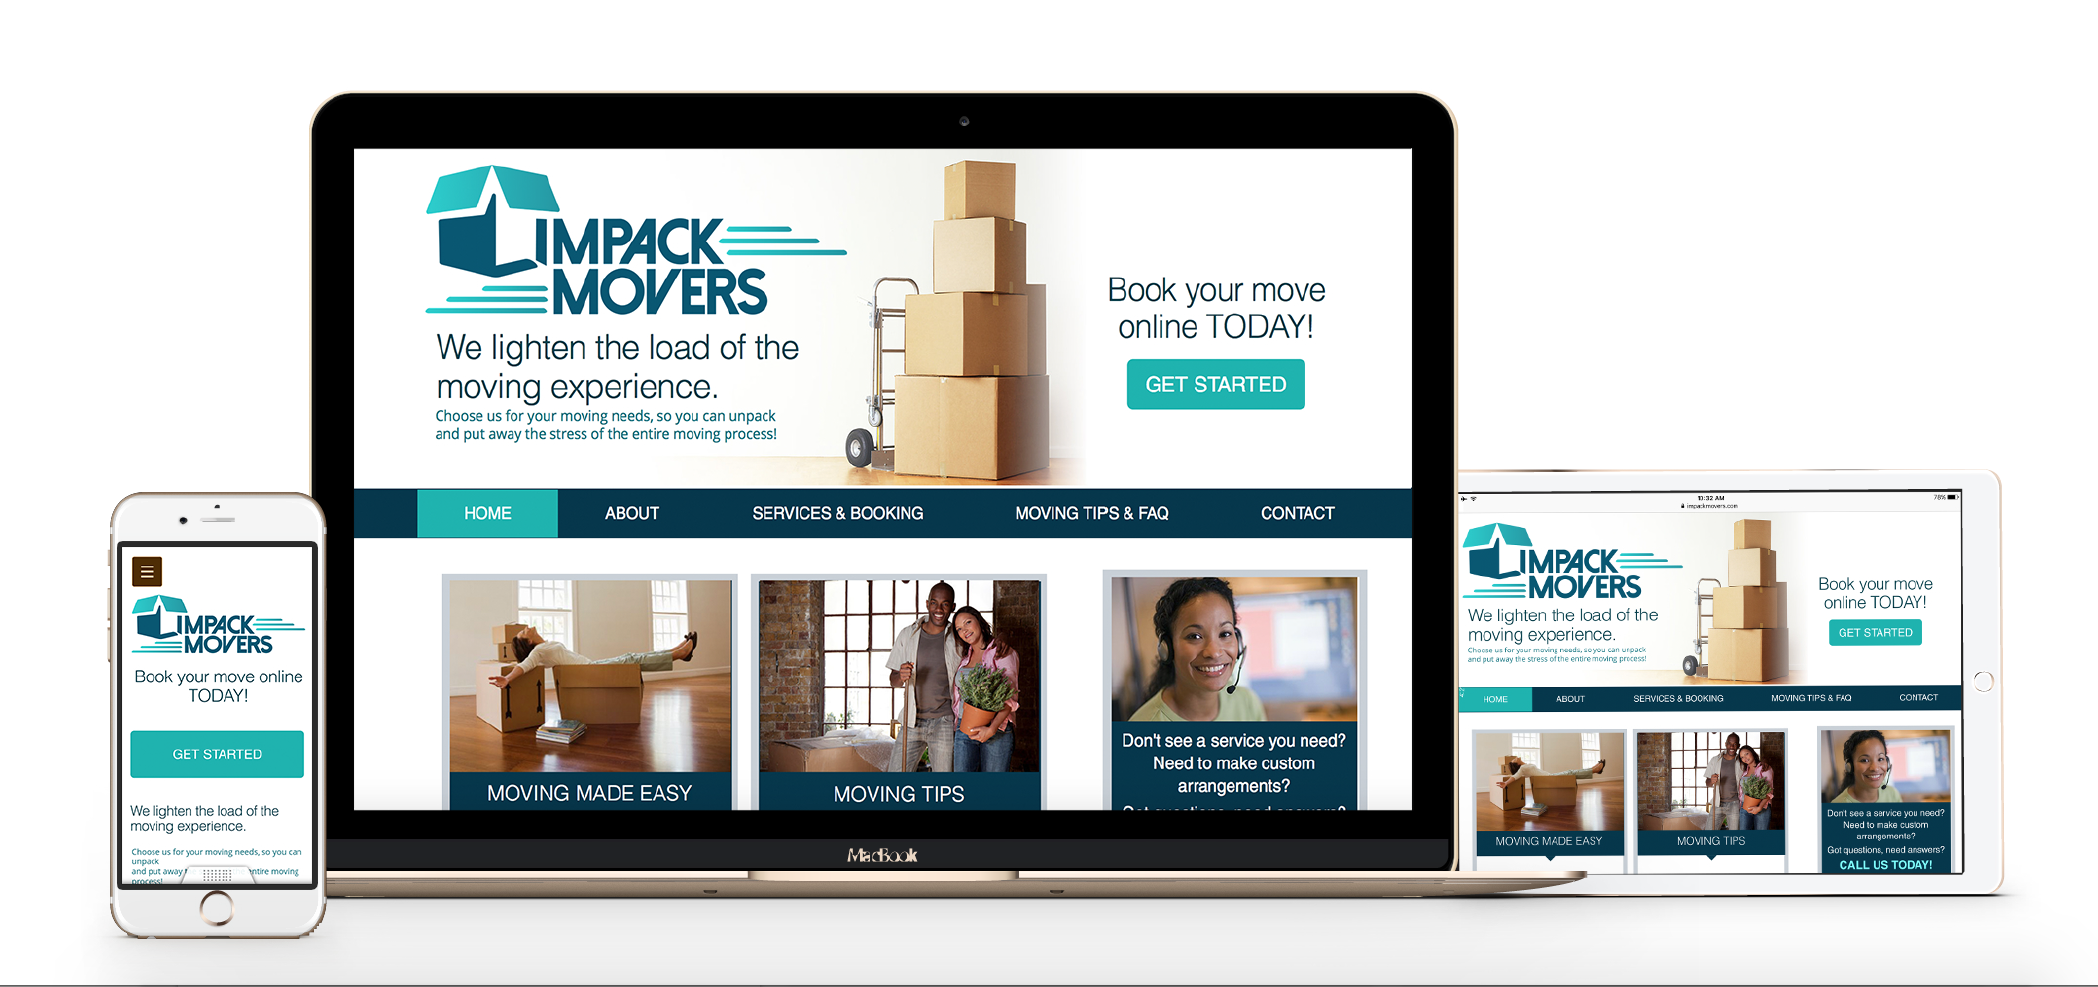 Impack Movers web design